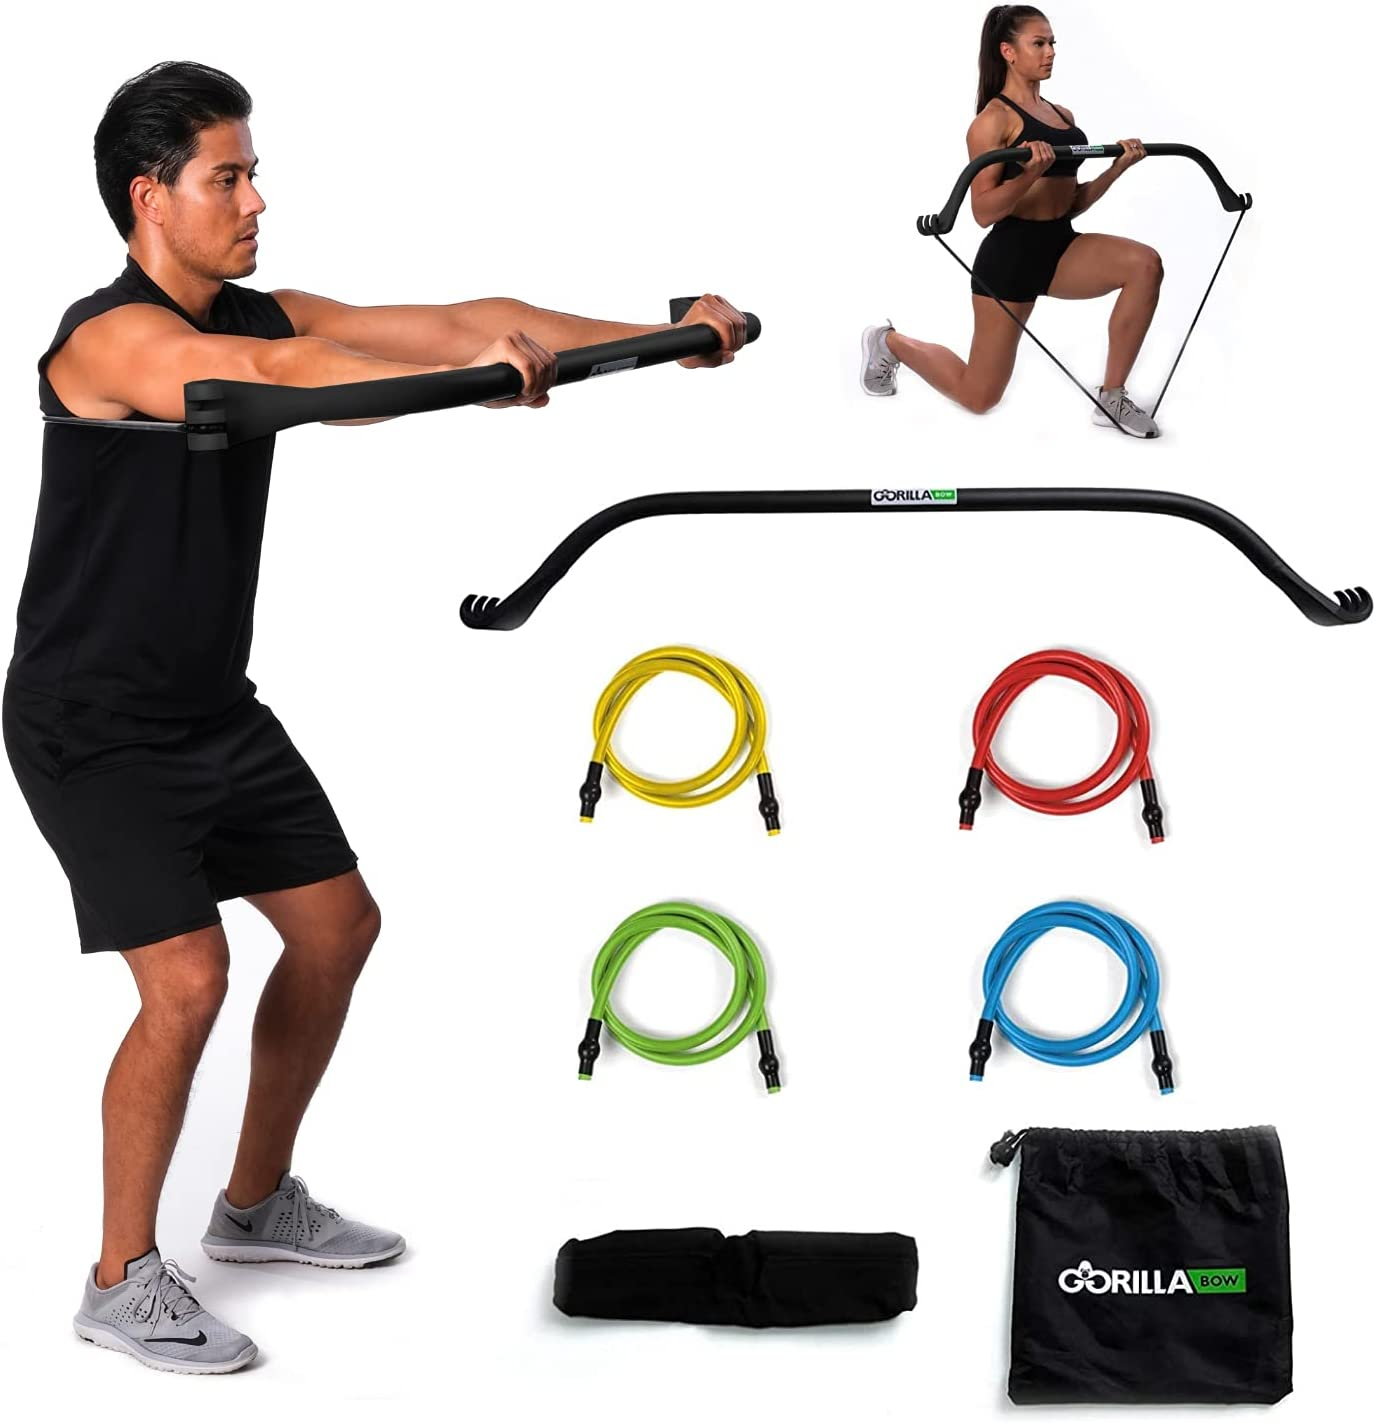 Gorilla Bow Portable Home Gym 2020モデル Resistance fo Bar and System 新発売 Bands